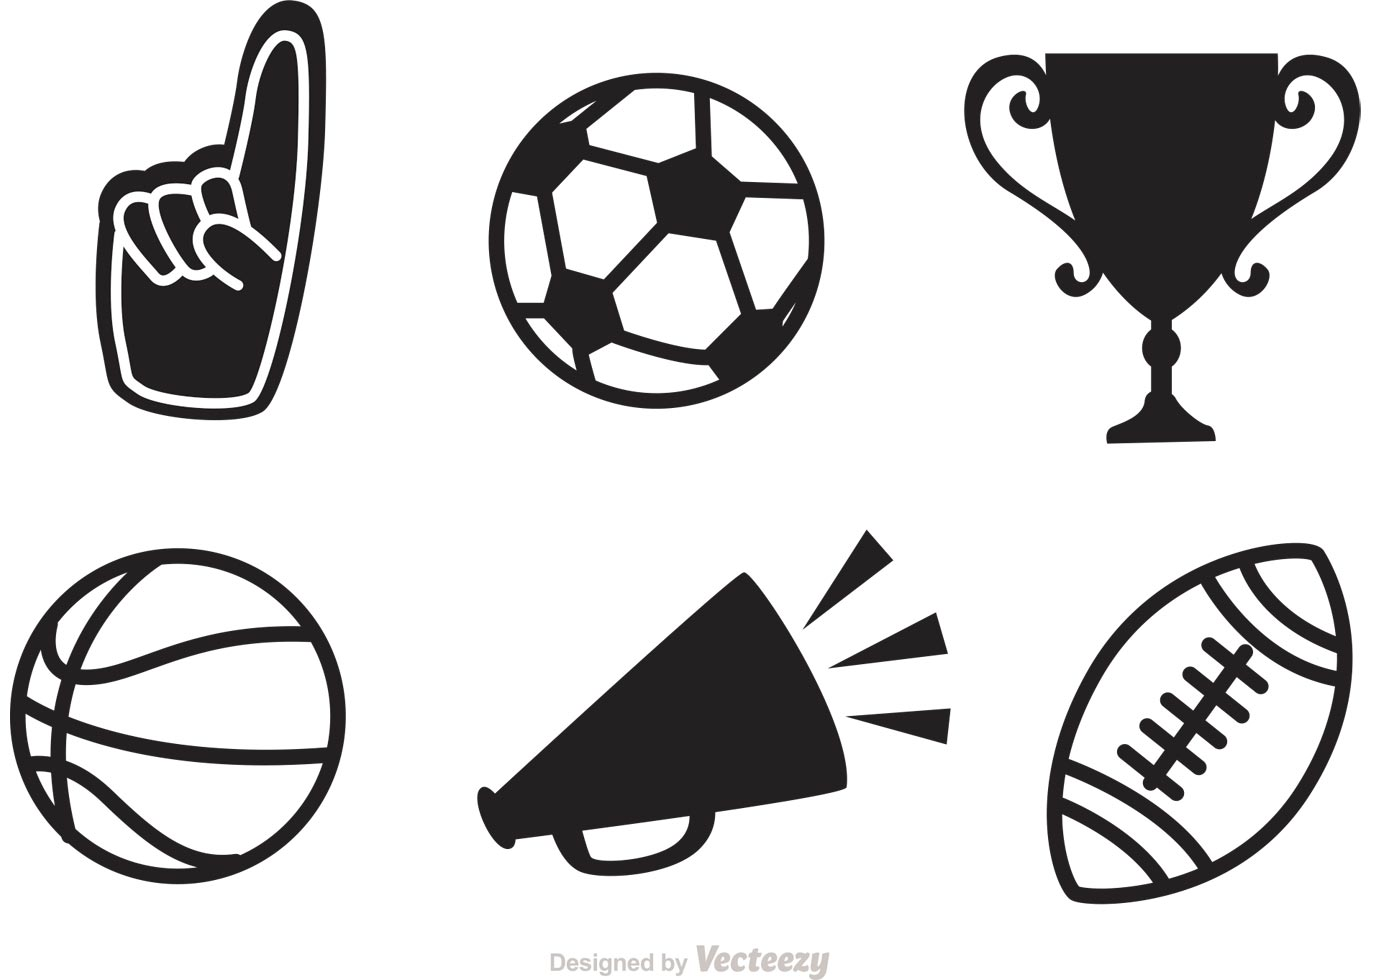 sports free vector art 7256 free downloads rh vecteezy com sports vector icon sports vector free